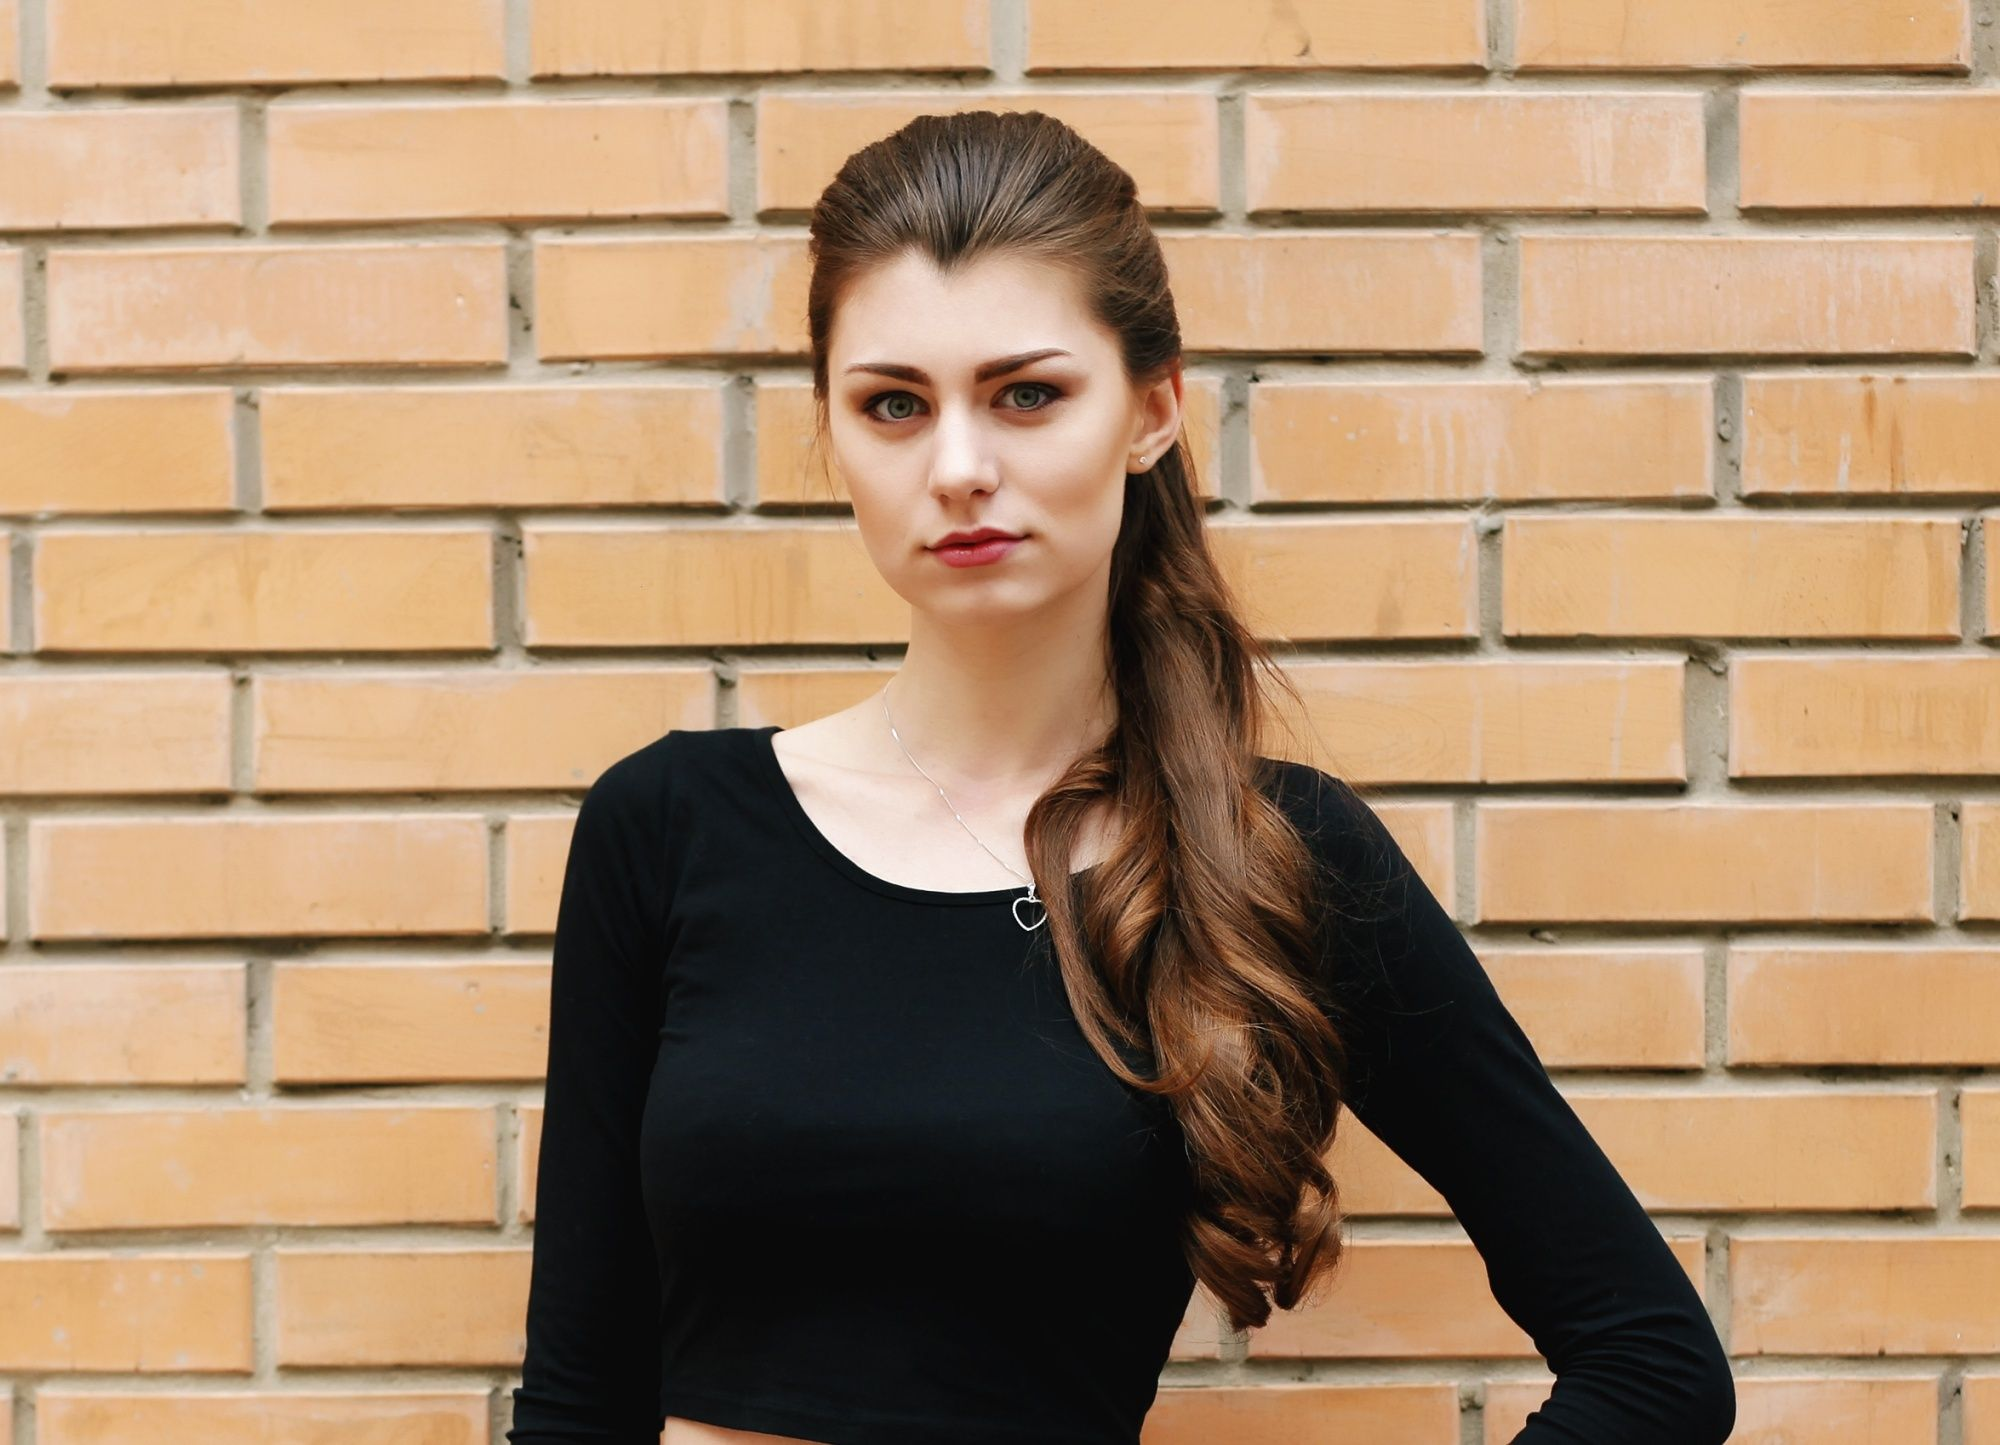 Caramel hair color: Woman with long brown hair in a ponytail against a brick wall